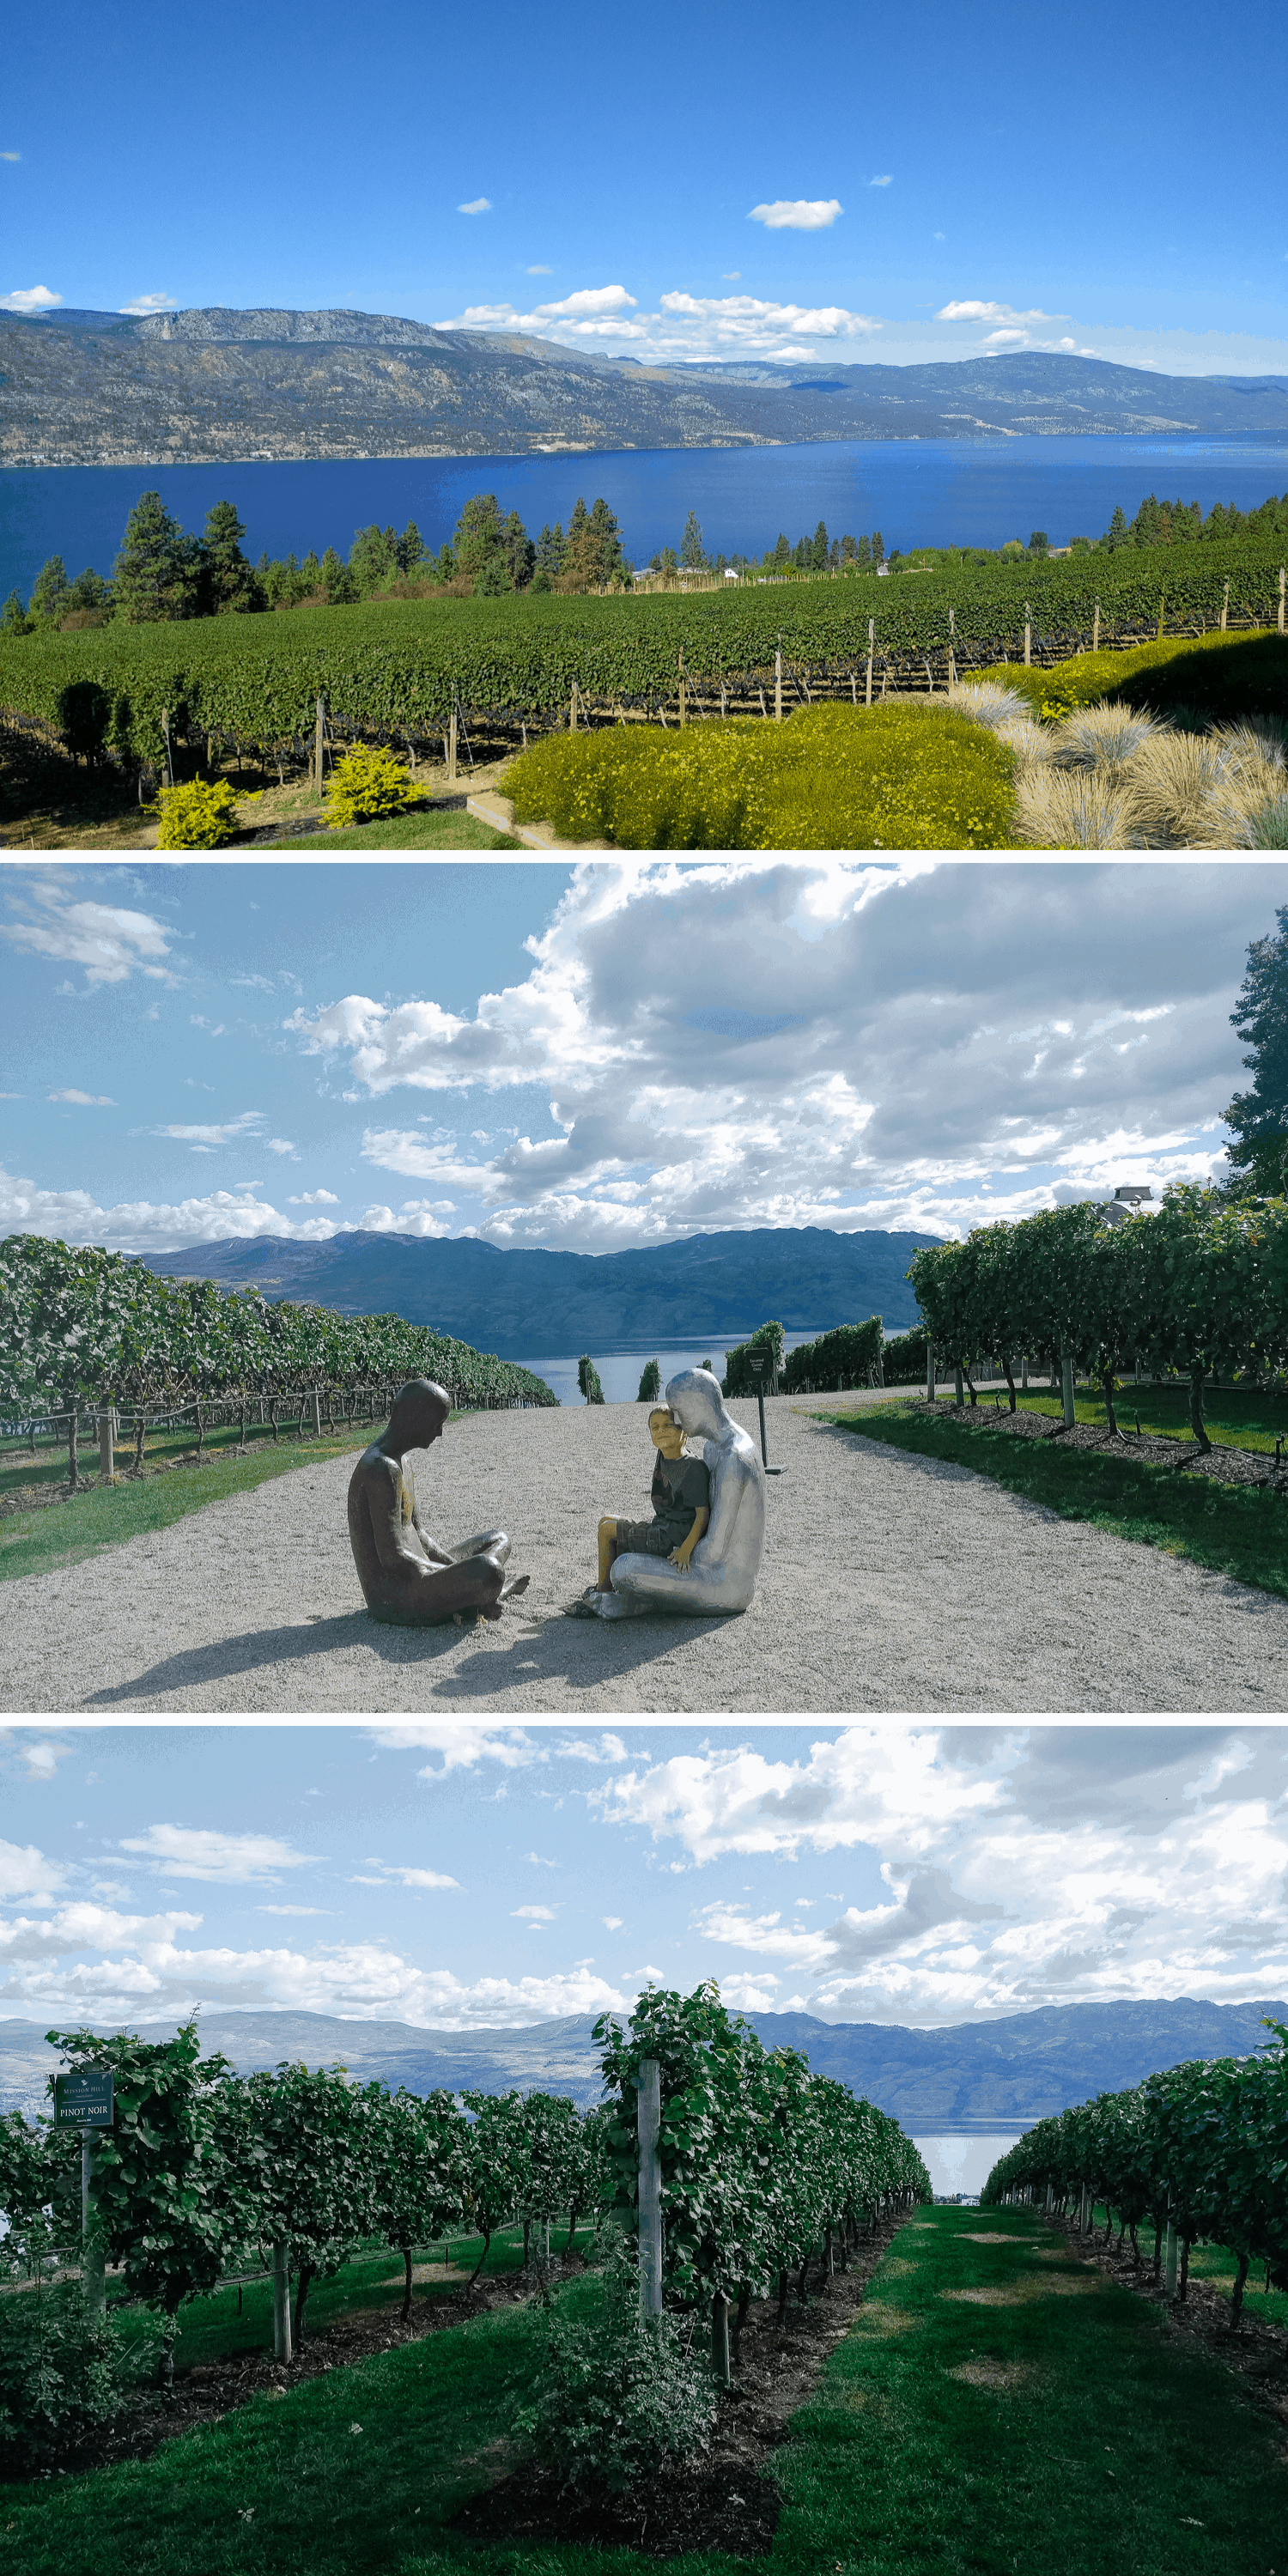 Collage of vineyards in Kelowna